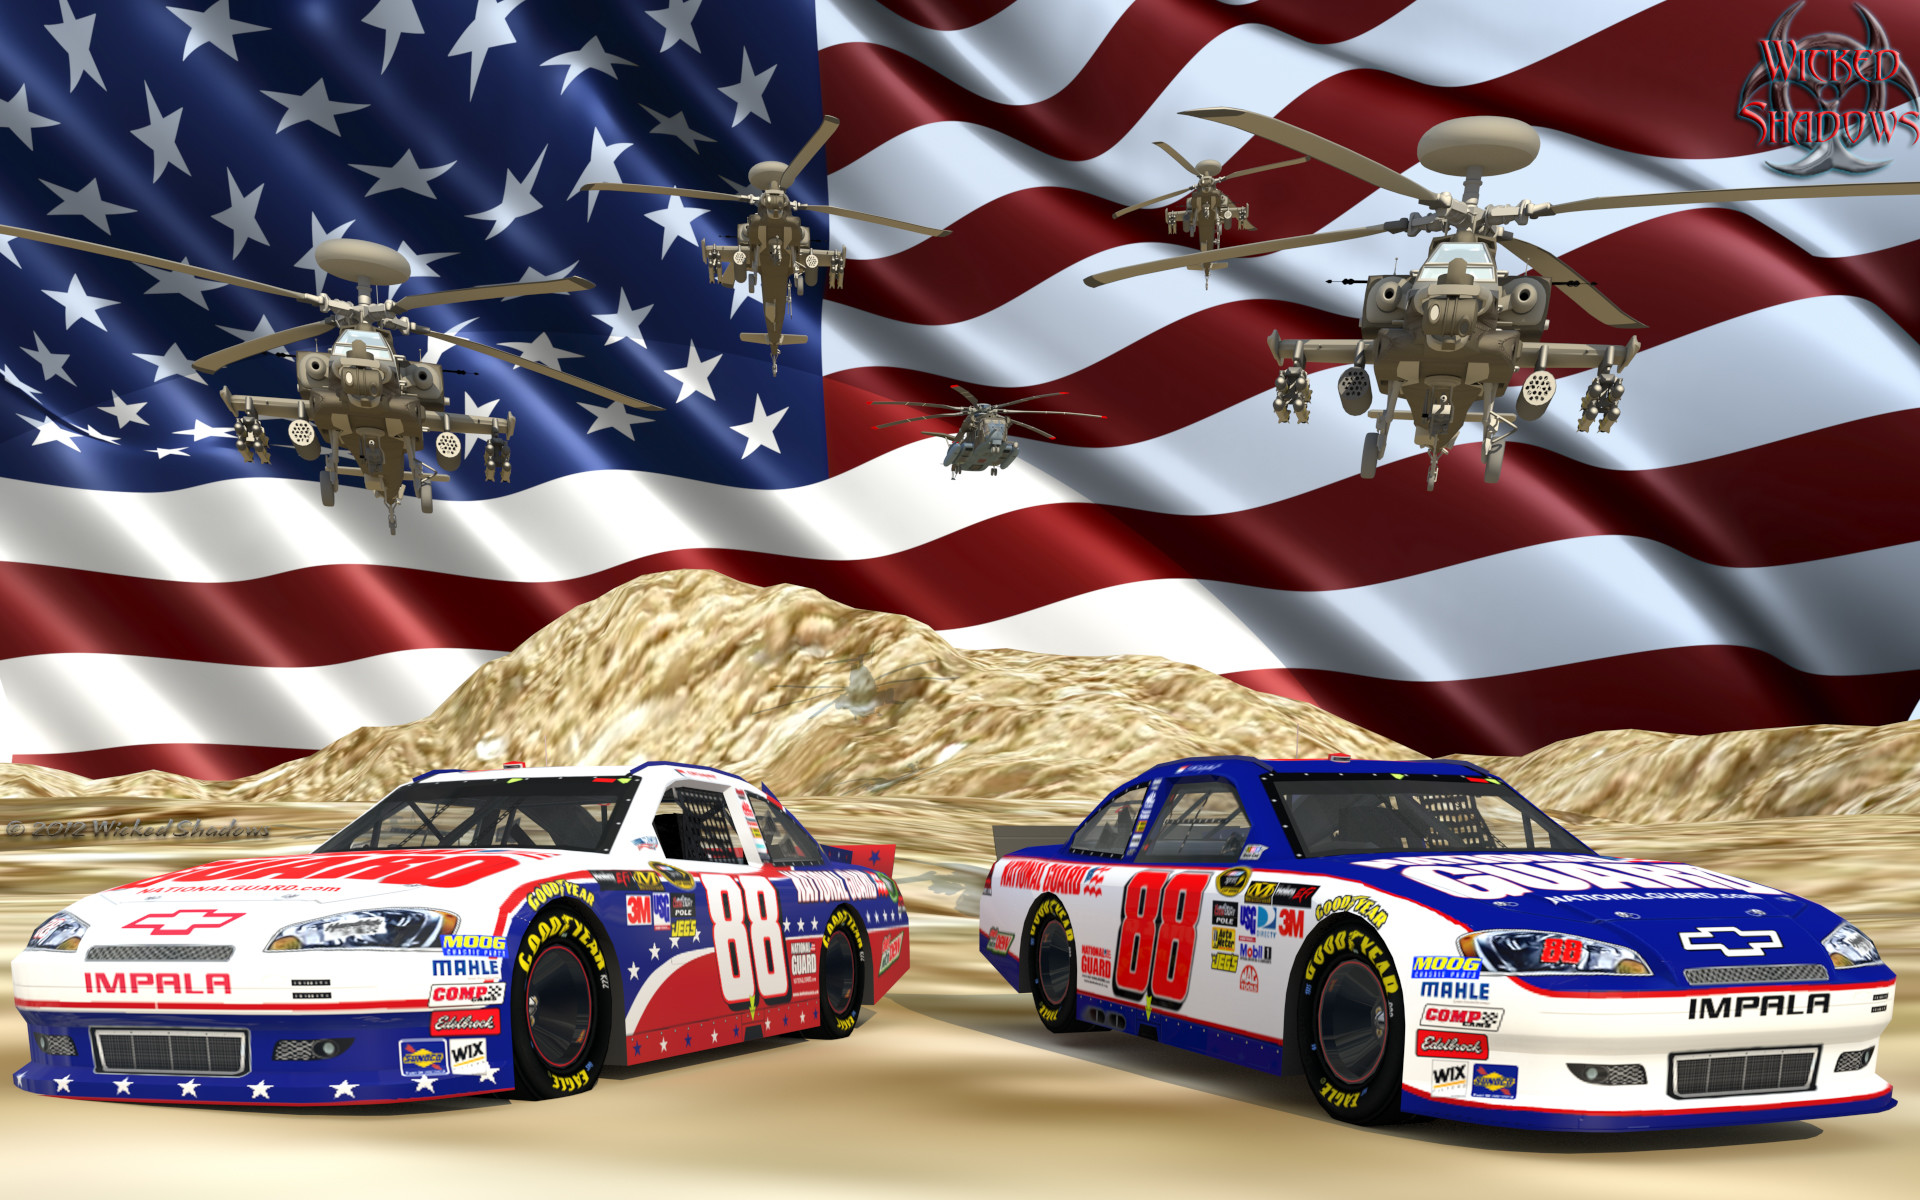 Wallpapers By Wicked Shadows: Dale Earnhardt Jr. Nascar Unites .